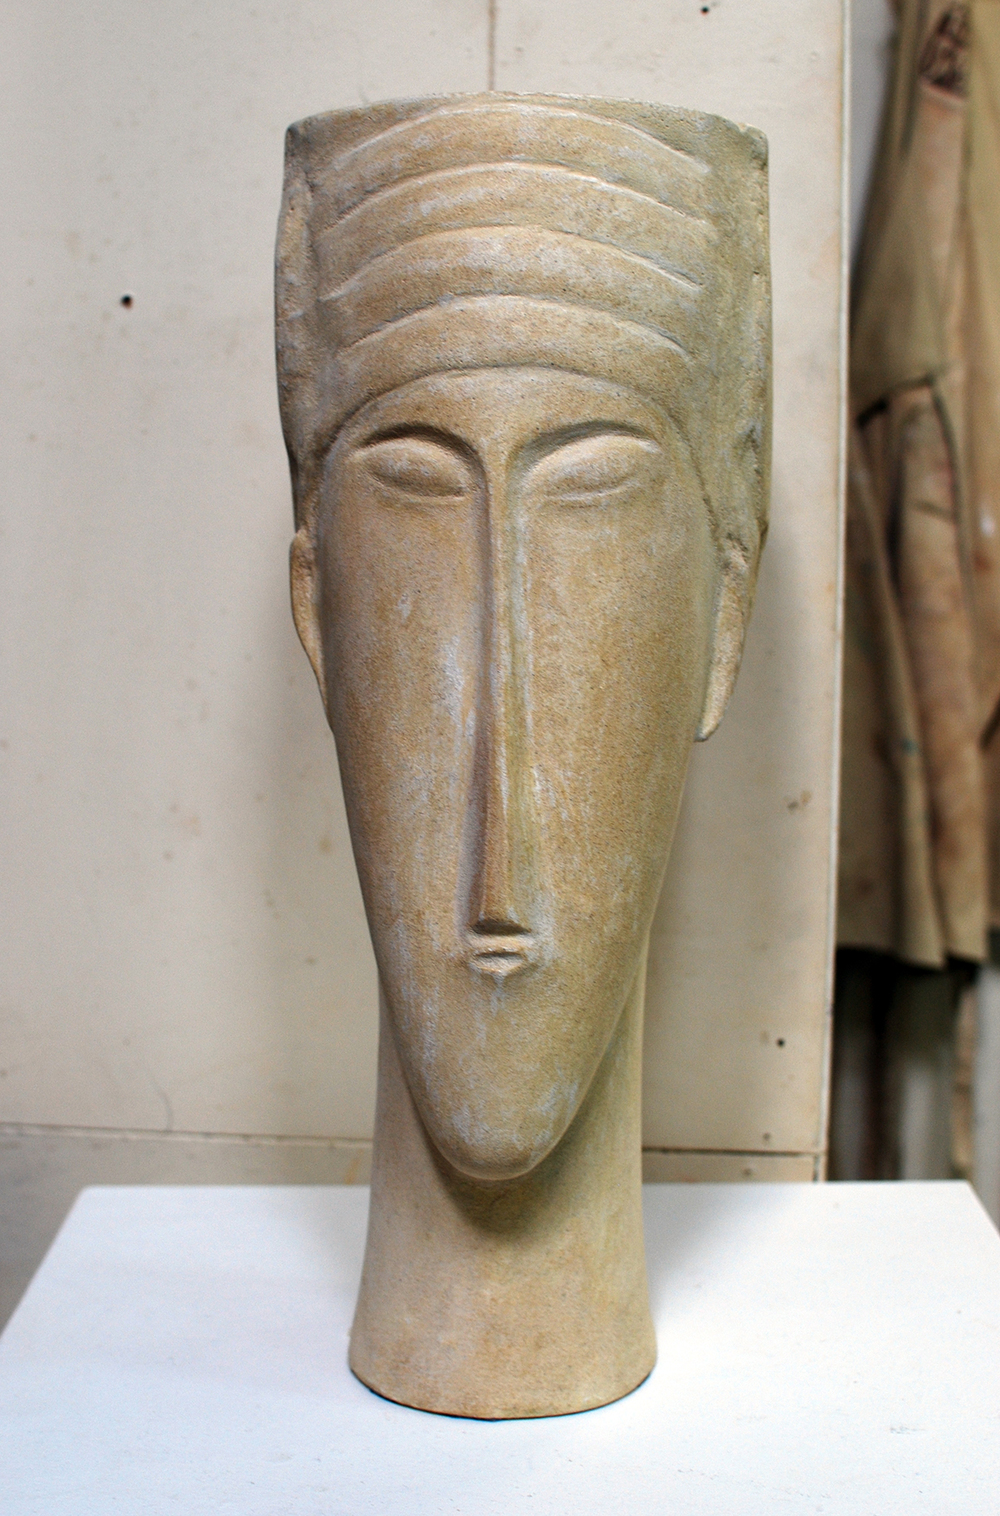 Copy of 'Modigliani Study', cement, $1,150